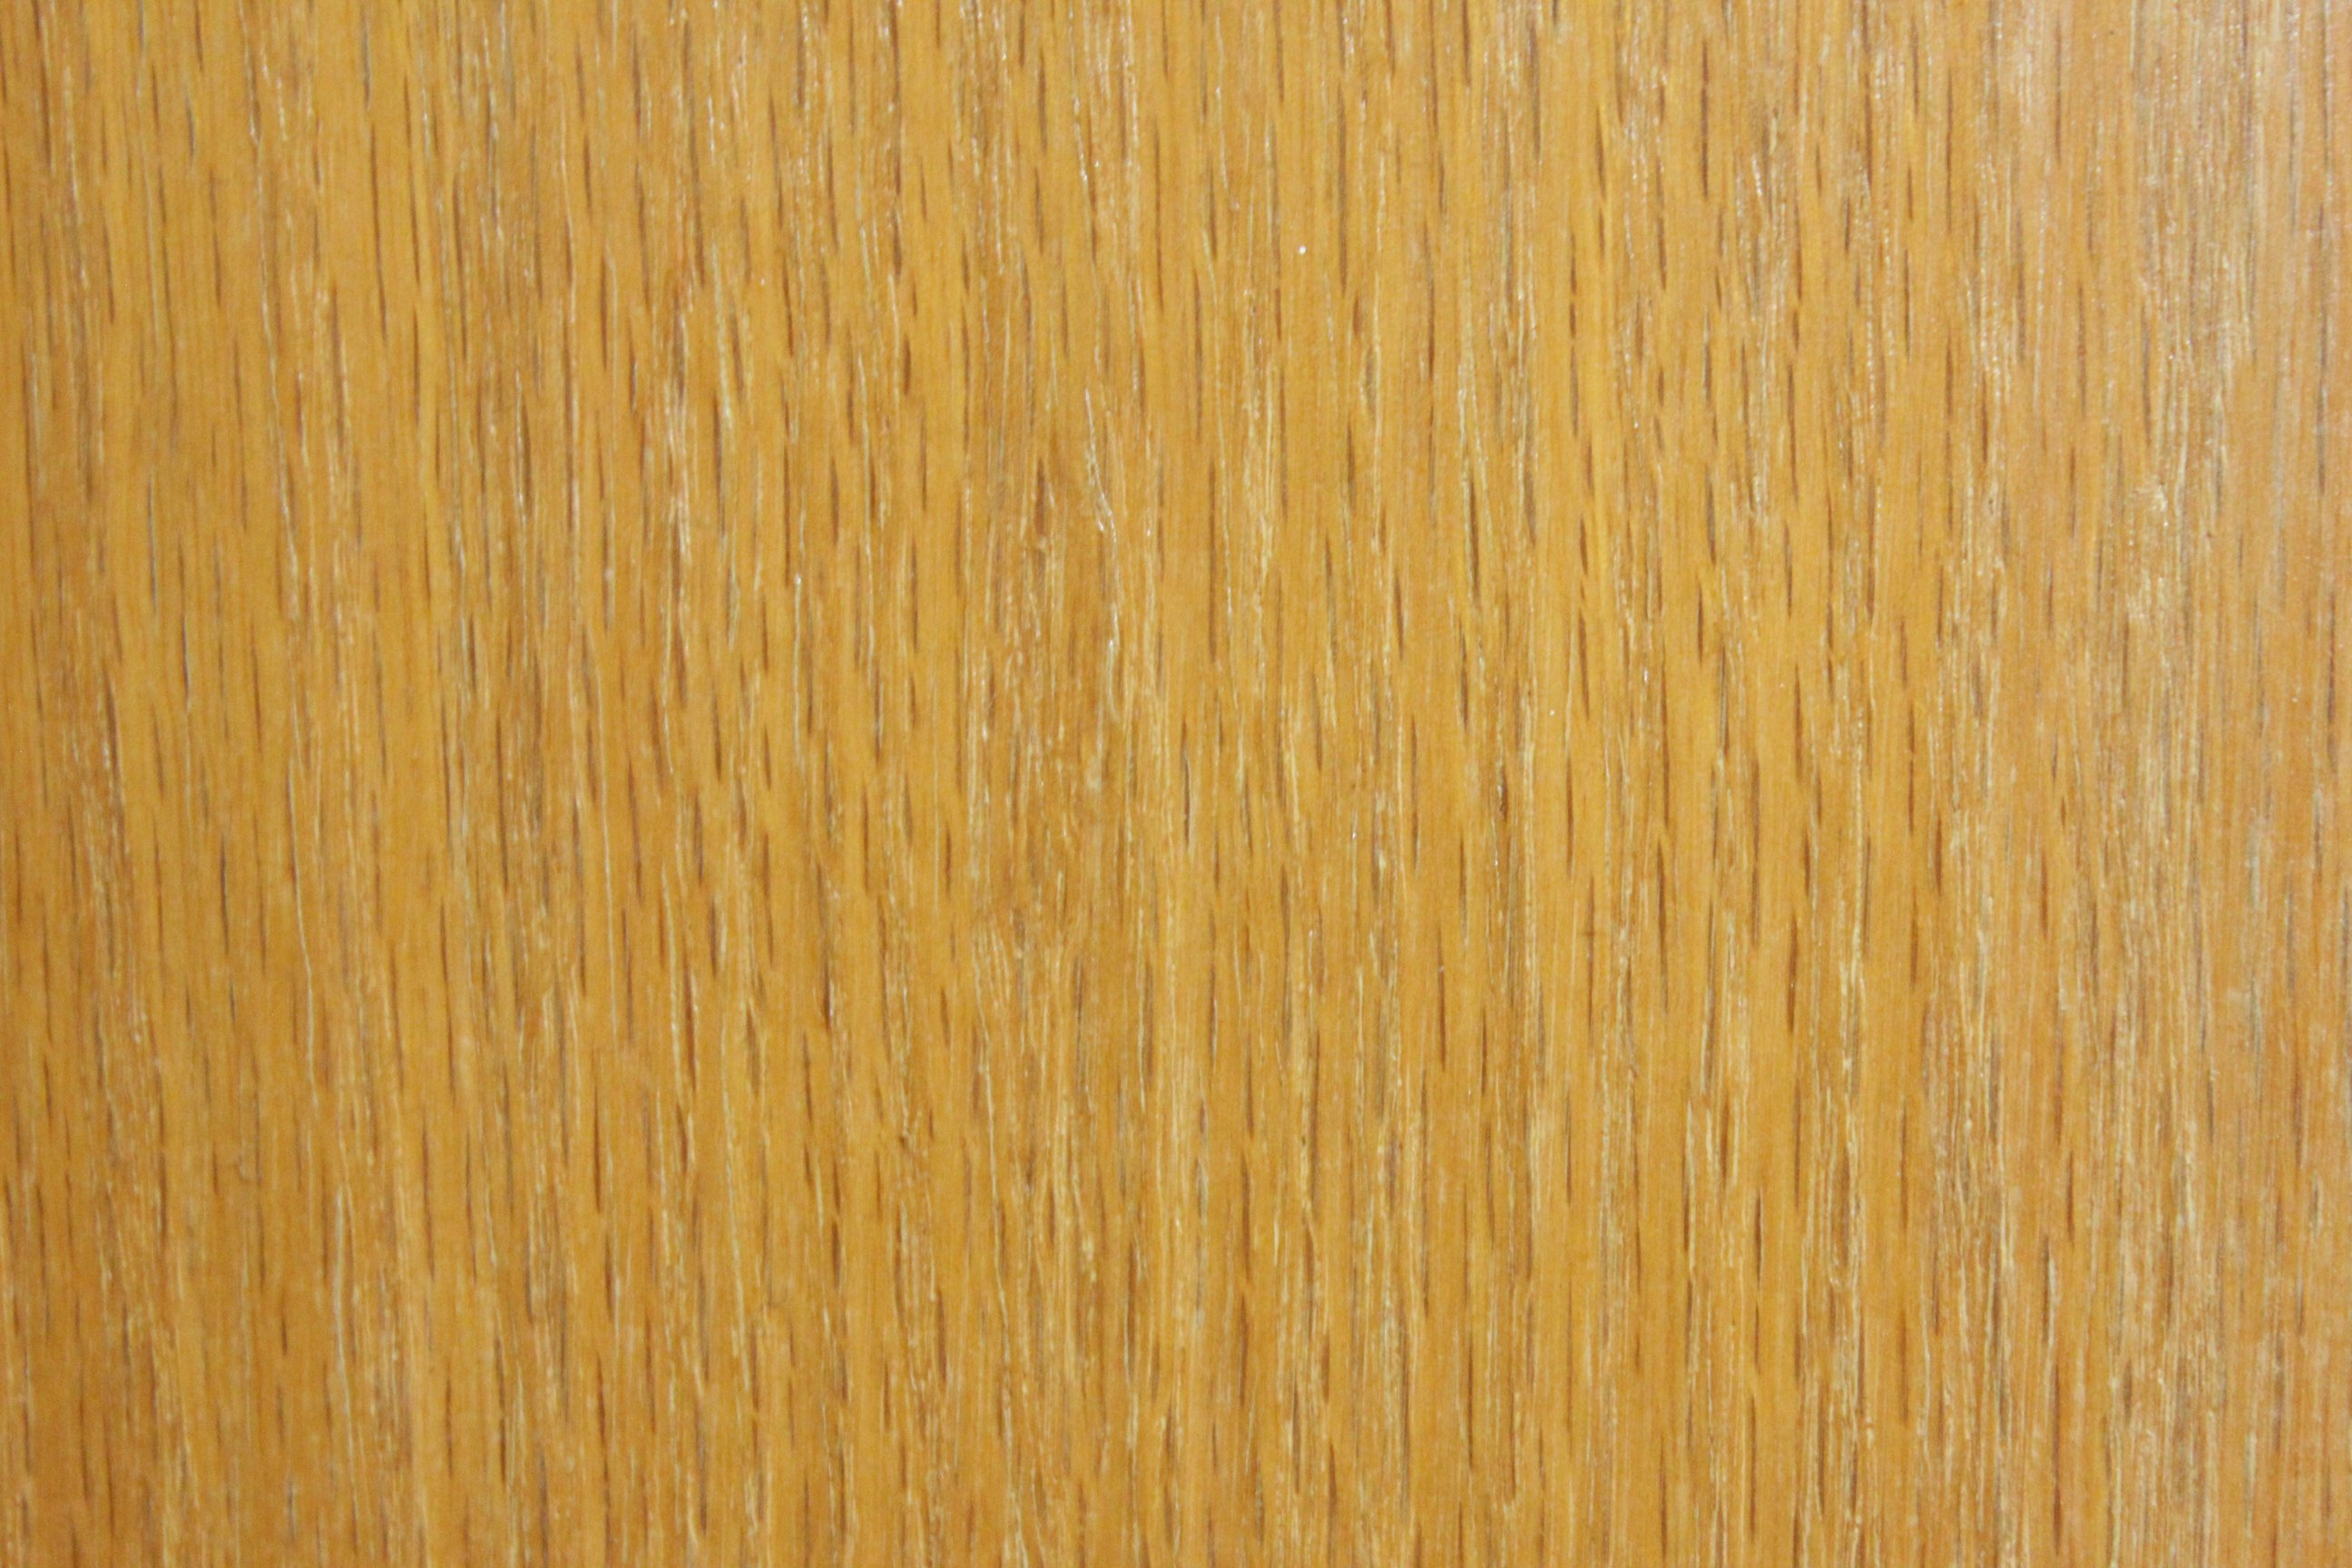 kitchen cabinet images rentals wood cupboard texture image - free stock photo public ...